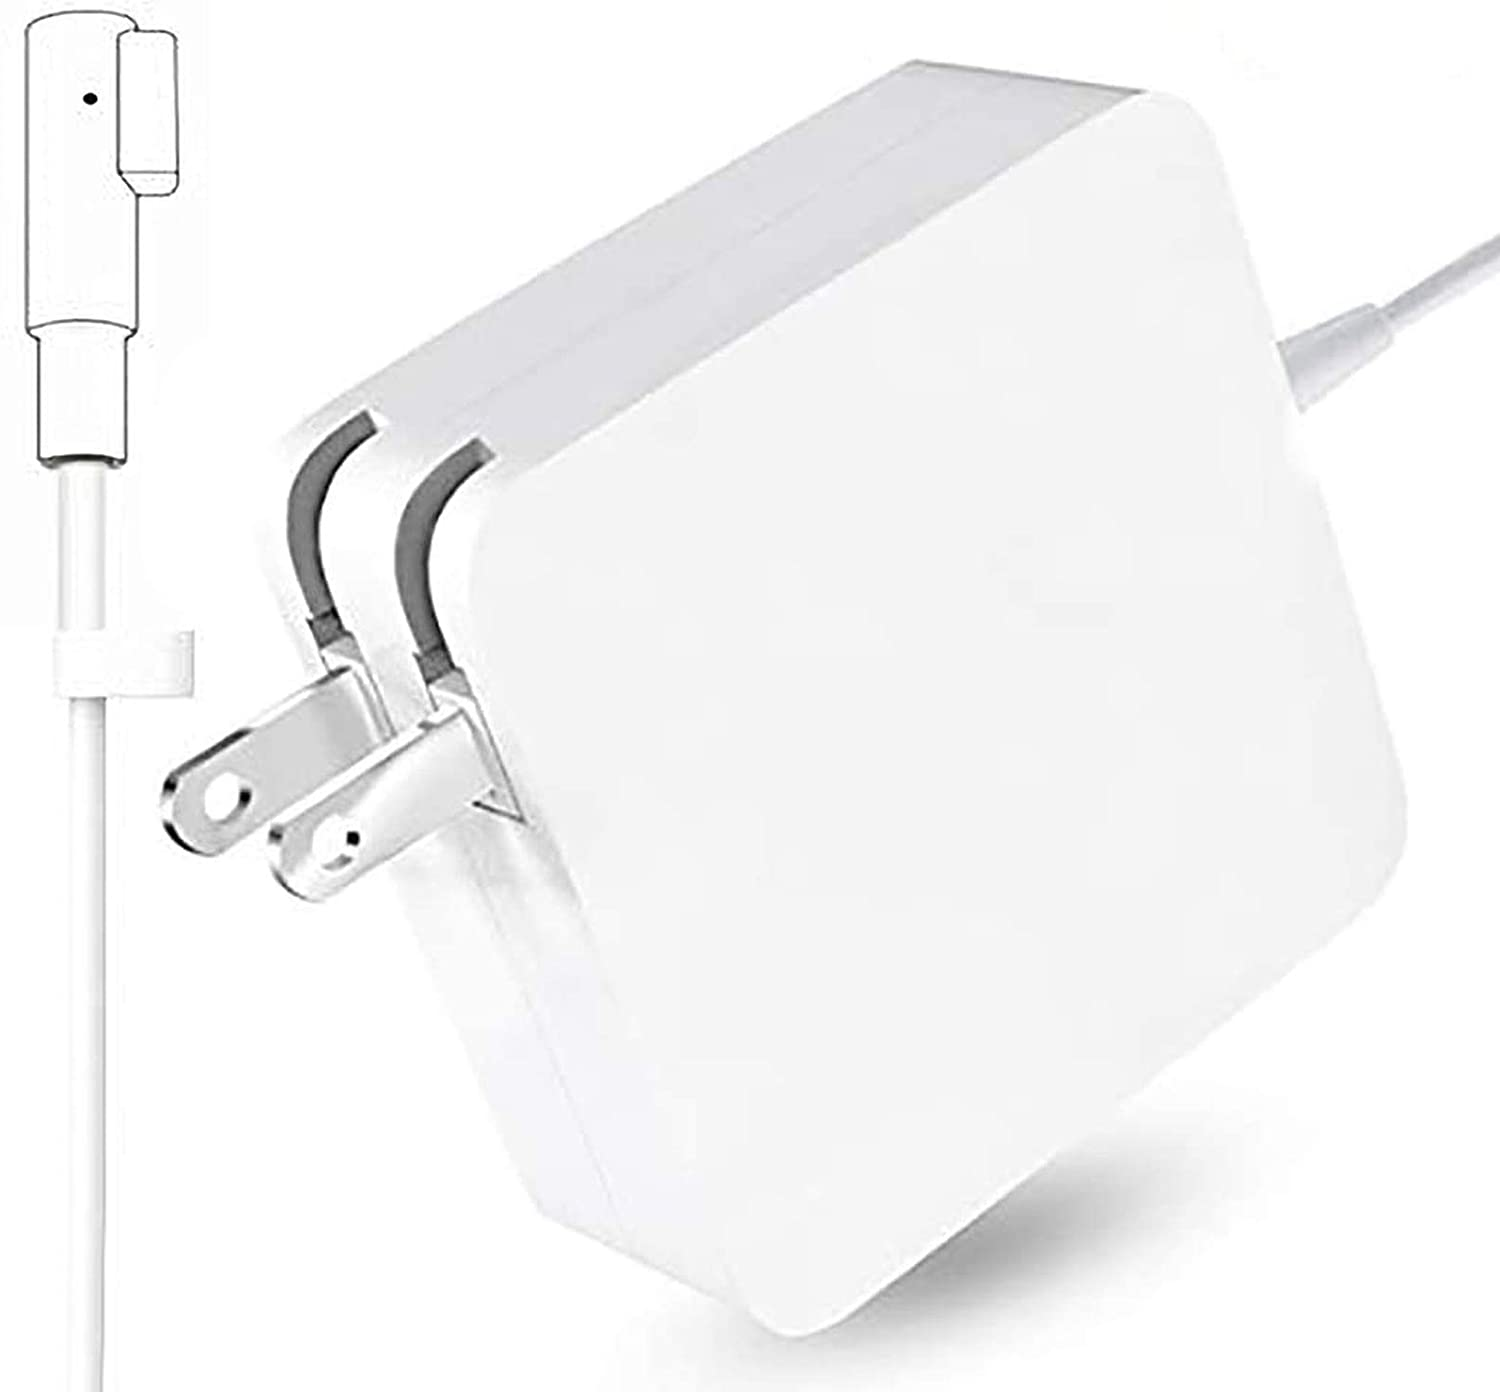 Mac Book Pro Charger, 60W Magsafe 1 Power Adapter L-Tip Magnetic Connector Charger for Mac Book Pro 13-inch (Before Mid 2012 Models)